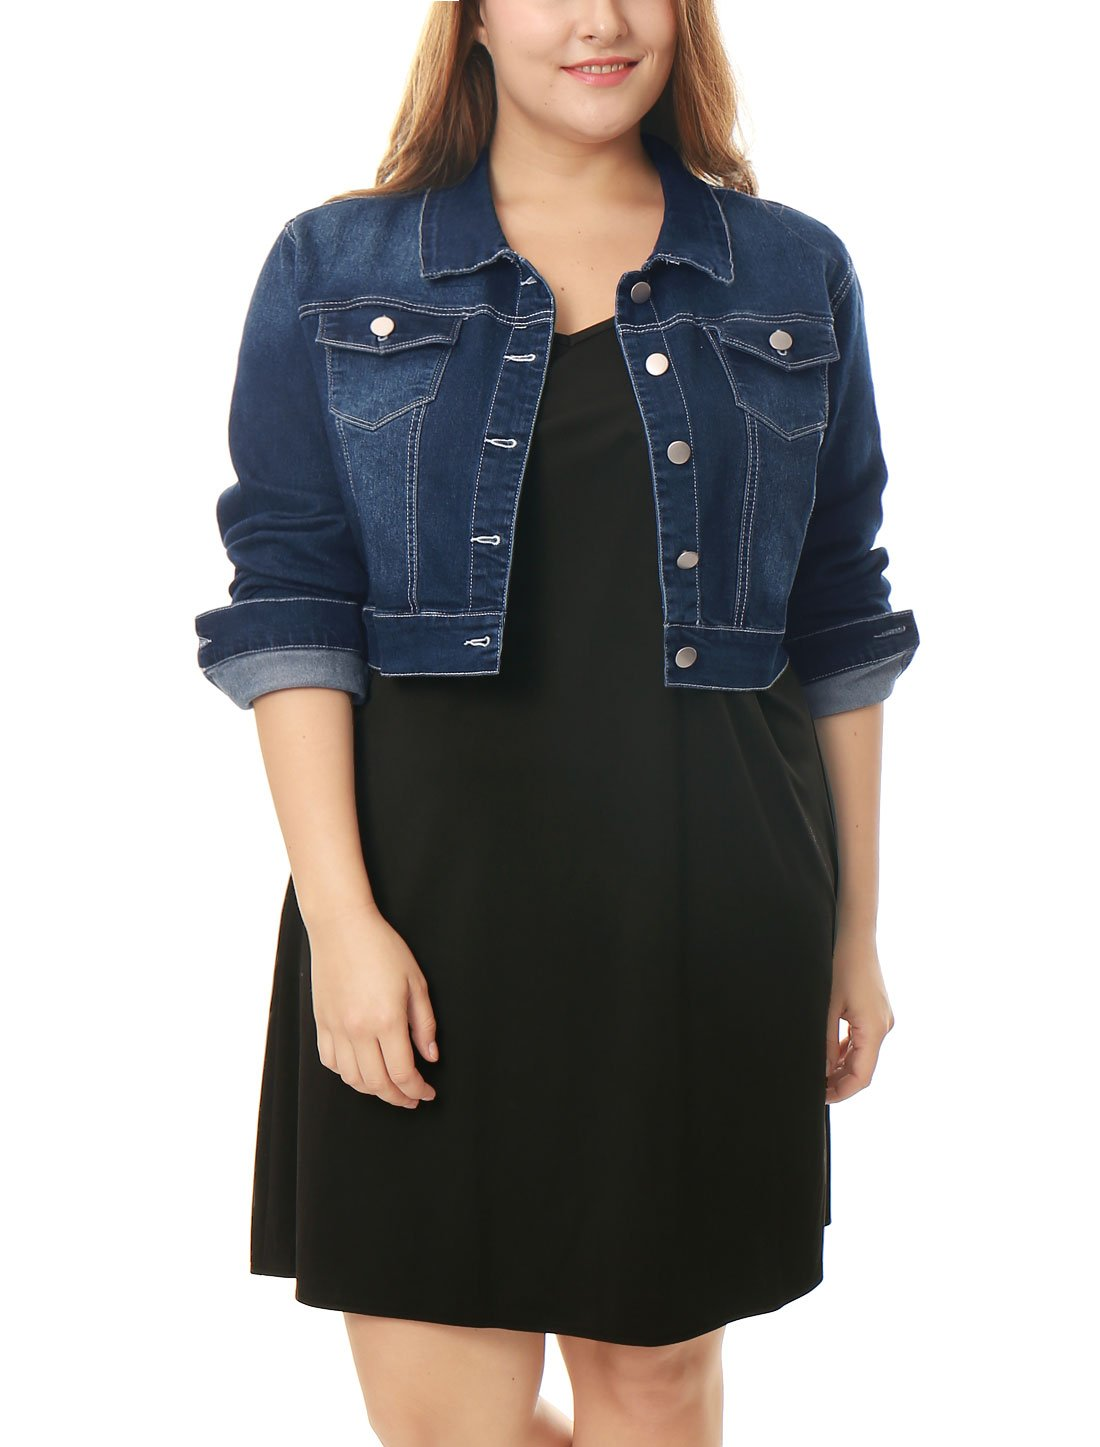 uxcell Women's Plus Size Button Closed Cropped Denim Jacket 2X Dark Blue